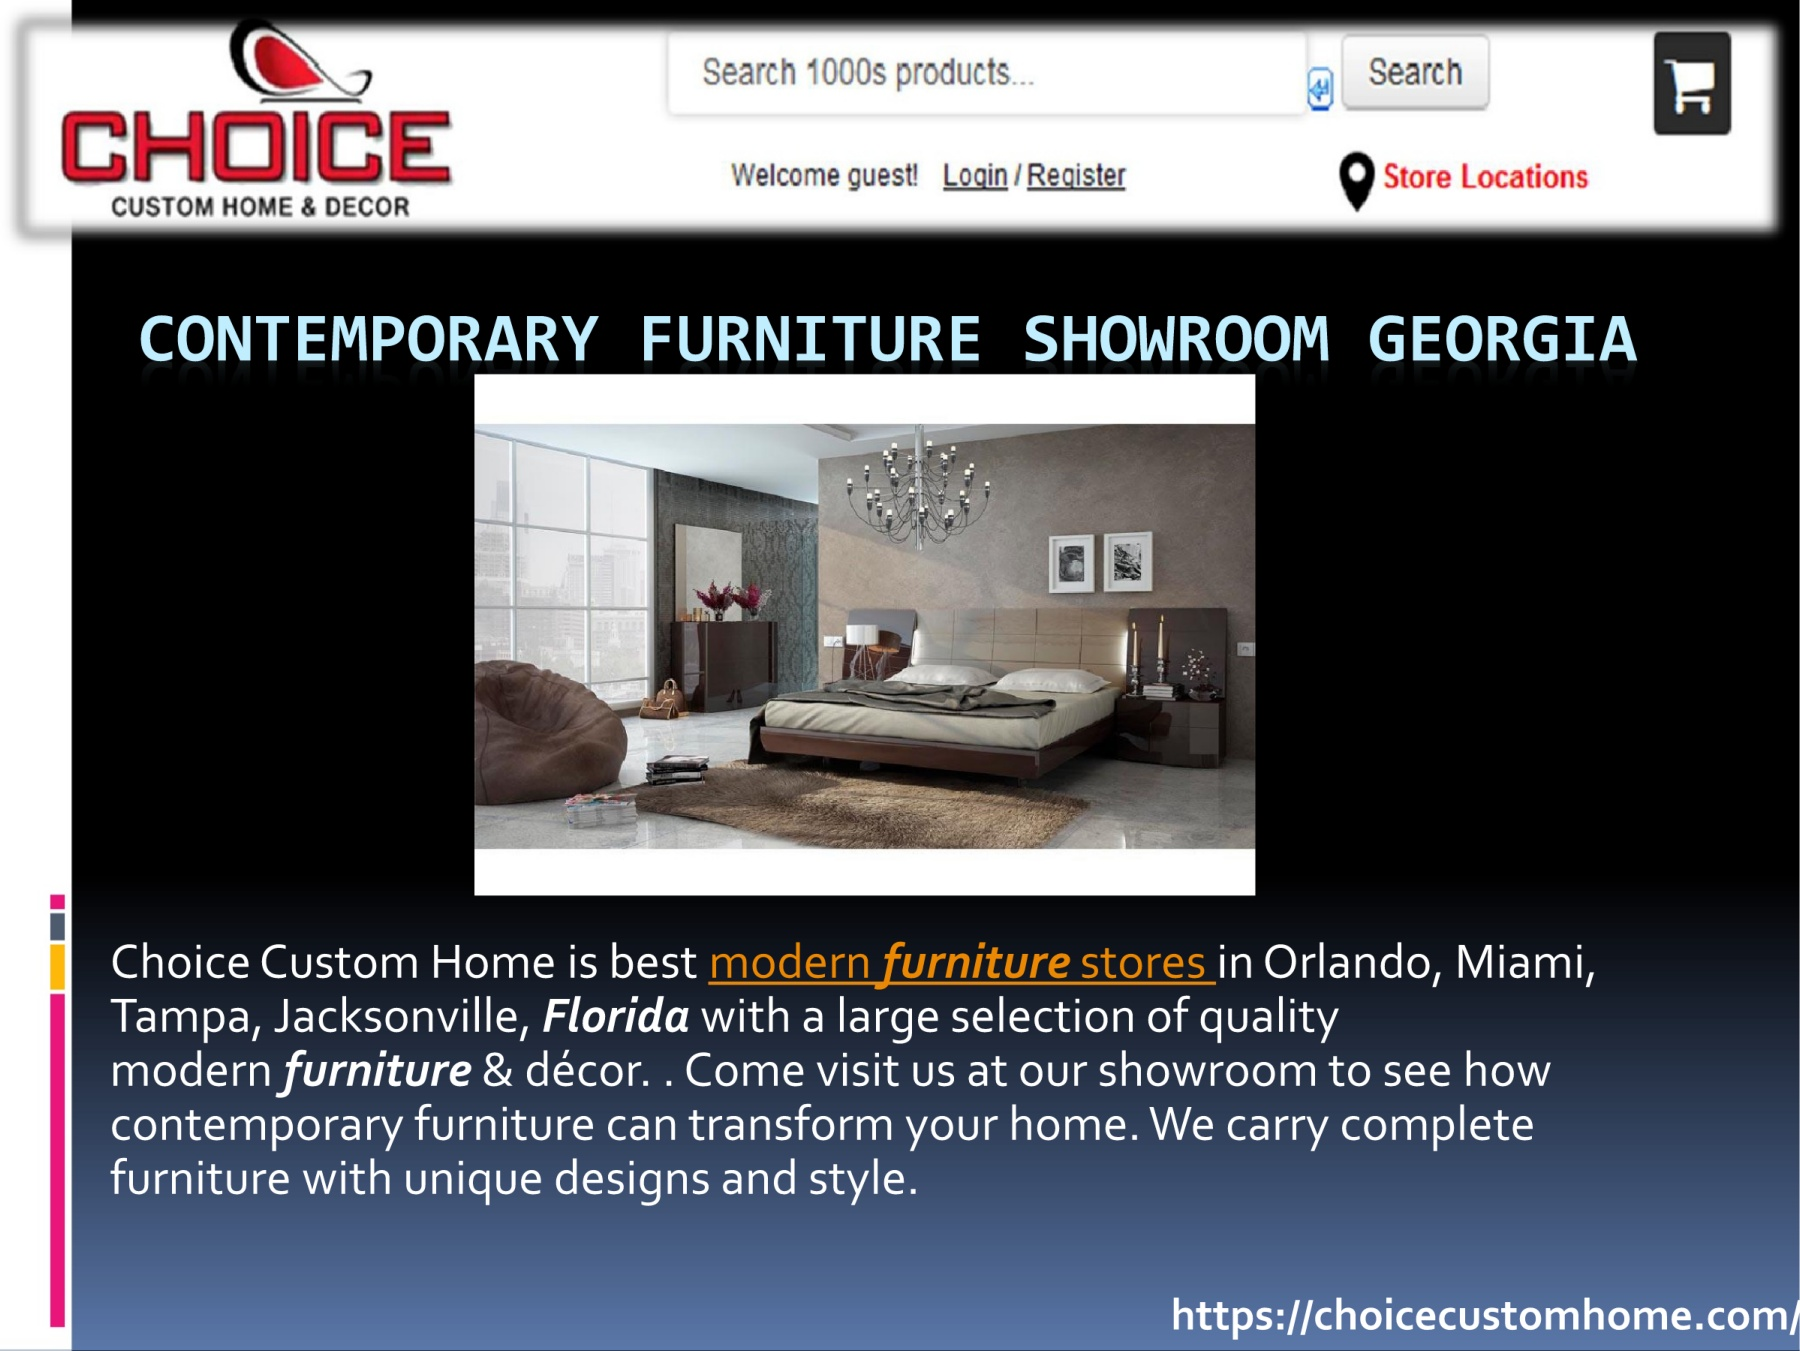 Choice Custom Home Is Best Modern Furniture Stores In Orlando, Miami,  Tampa, Jacksonville, Florida With A Large Selection Of Quality Modern  Furniture ...